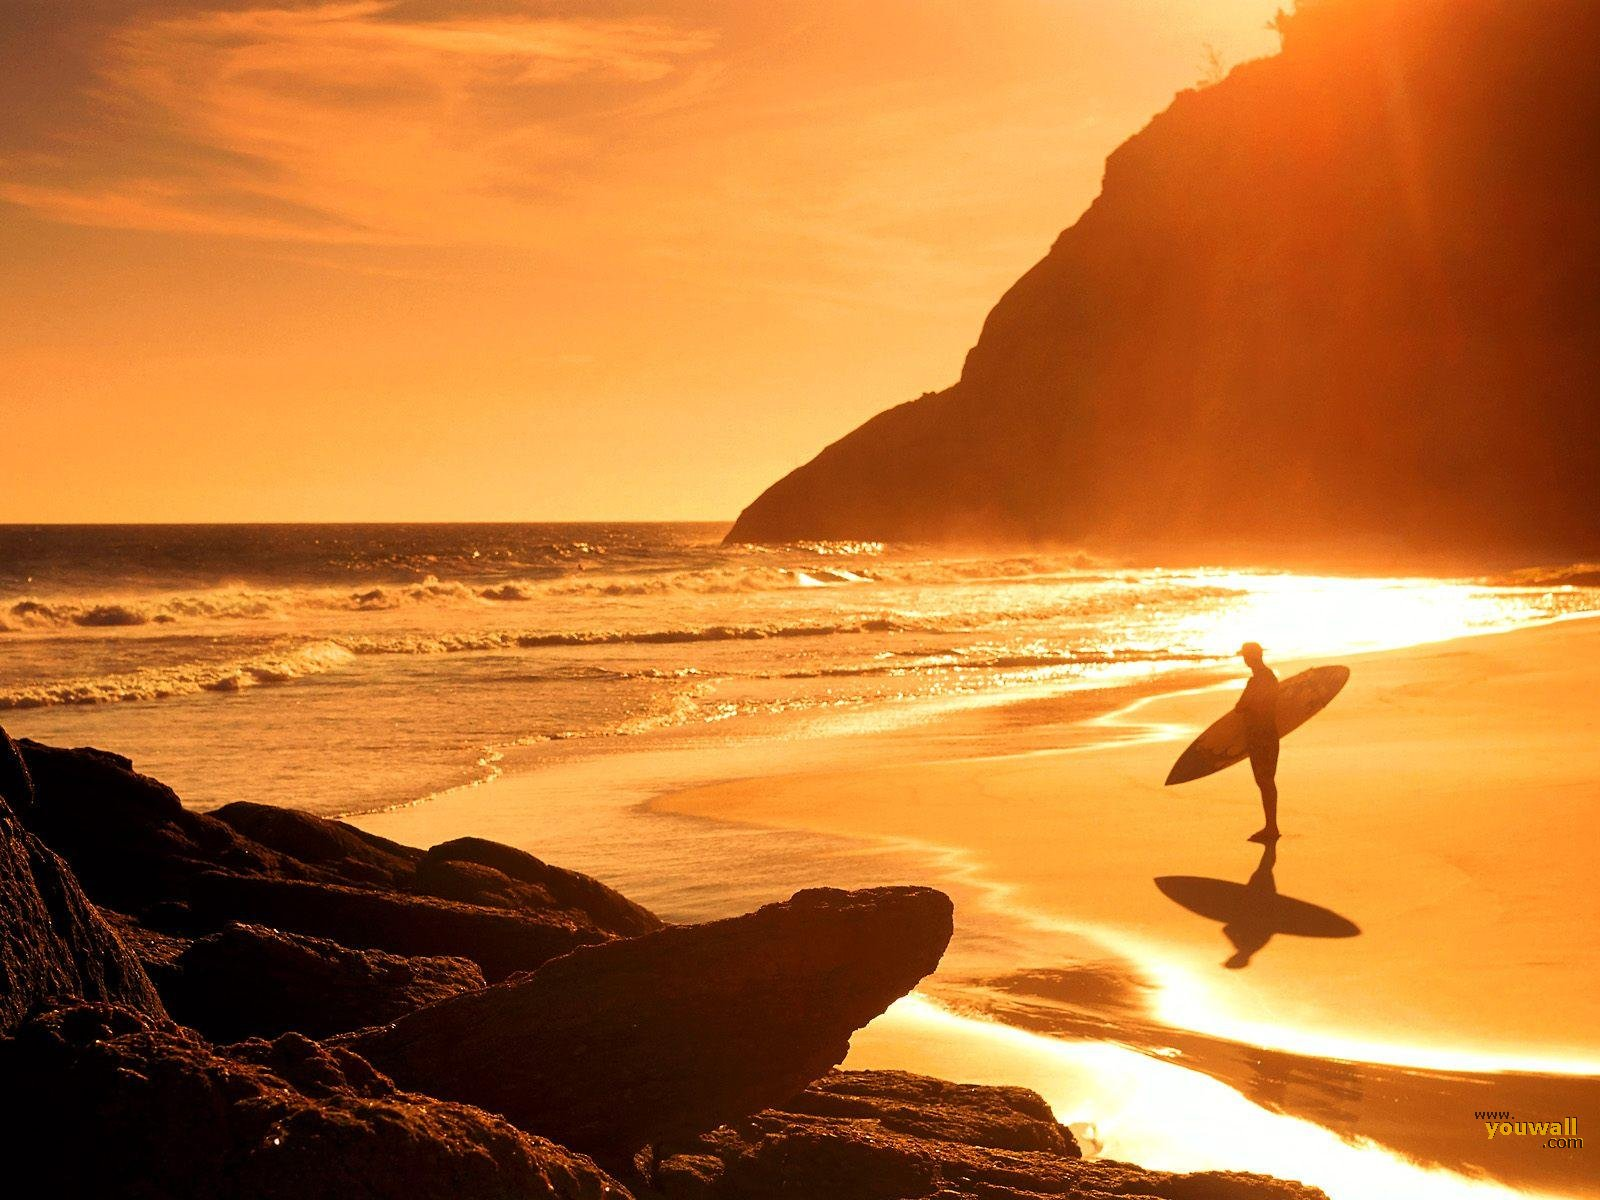 Sunset Surf backgrounds Desktop Wallpaper High Quality Wallpapers 1600x1200